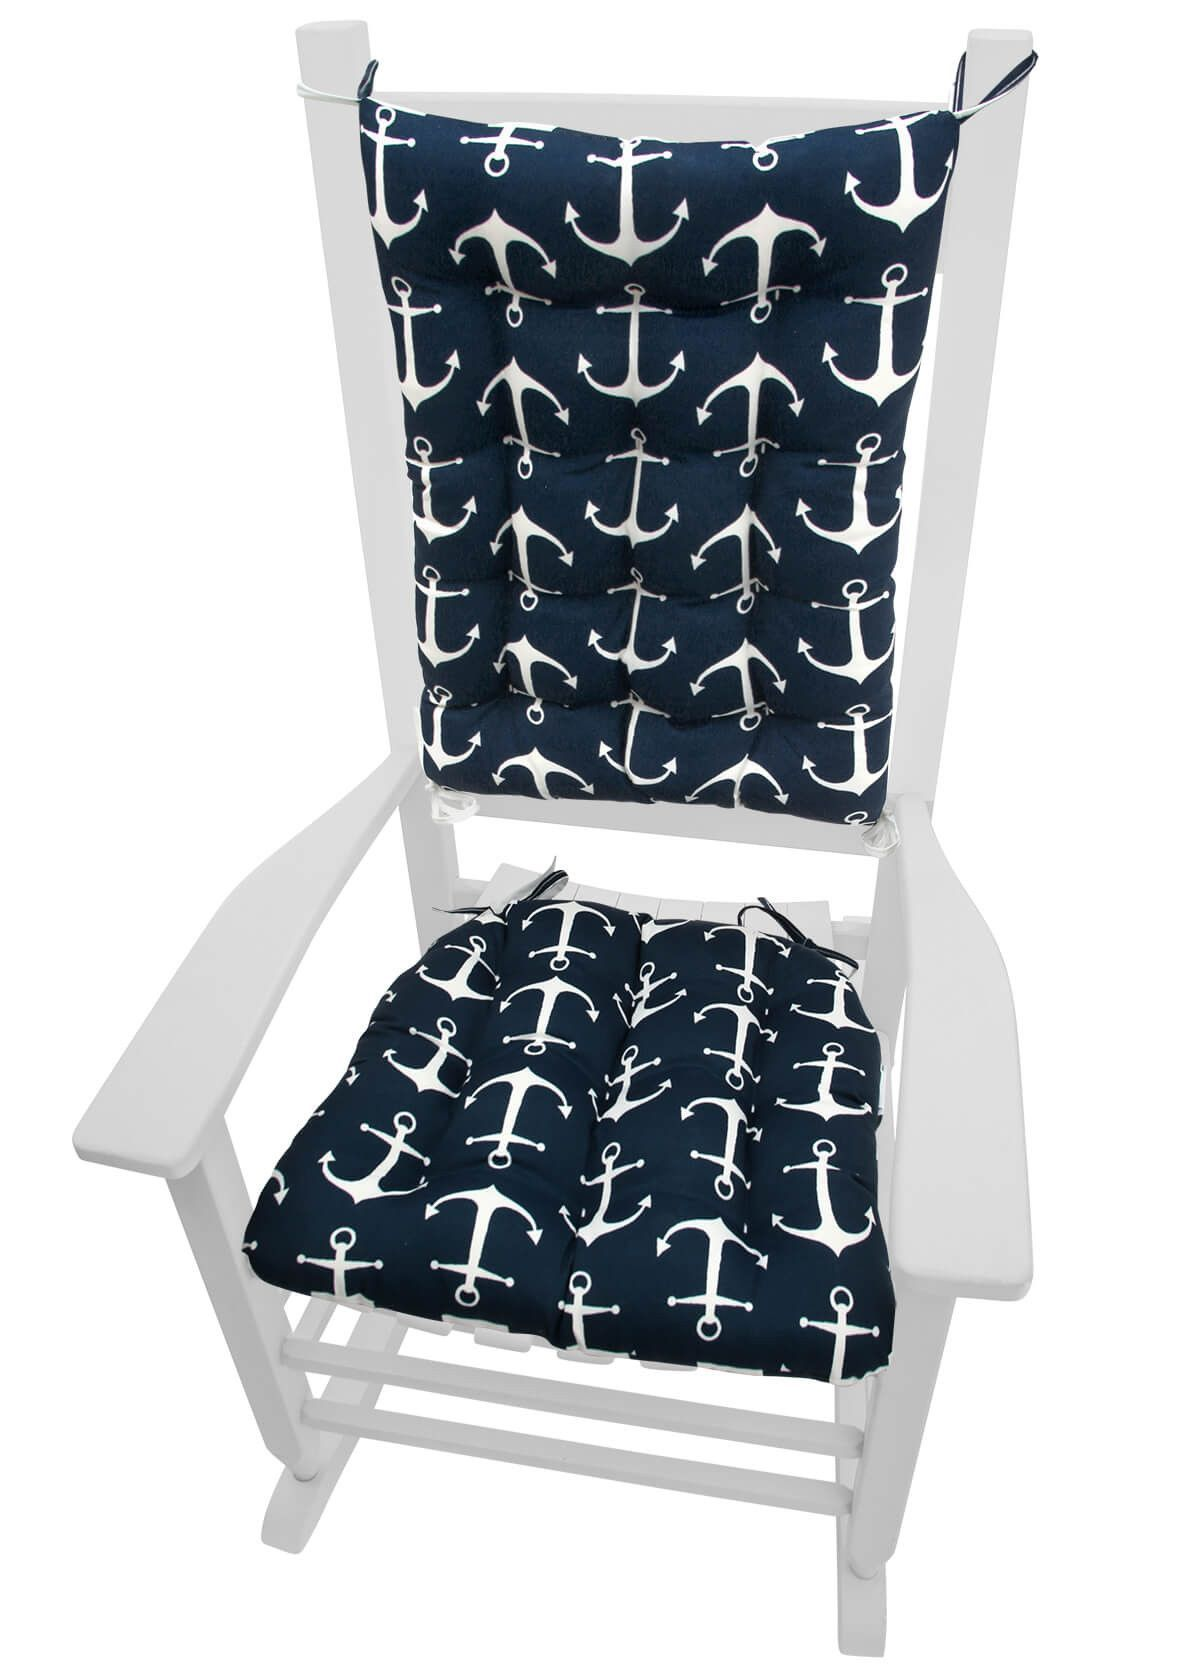 Sailors Anchor Patio Cushions And Dining Chair Pads Feature White Anchors On A Navy Blue Background Perfect For Your Ships Mess Any Room With Nautical